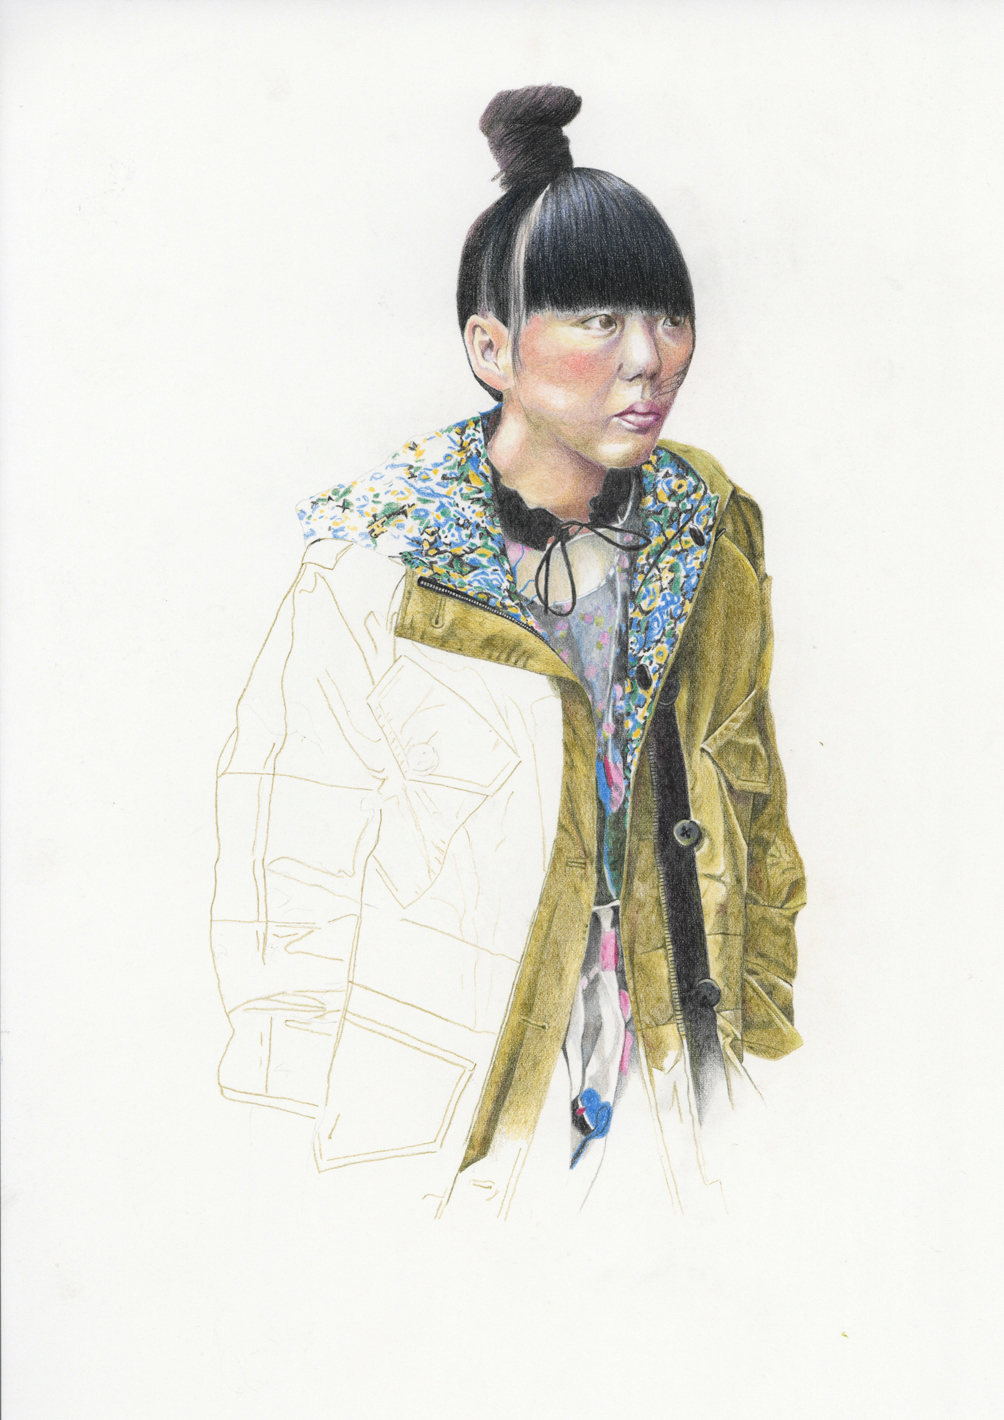 Colour Pencil fashion llustration of Suzie Bubble by Alison Sargent